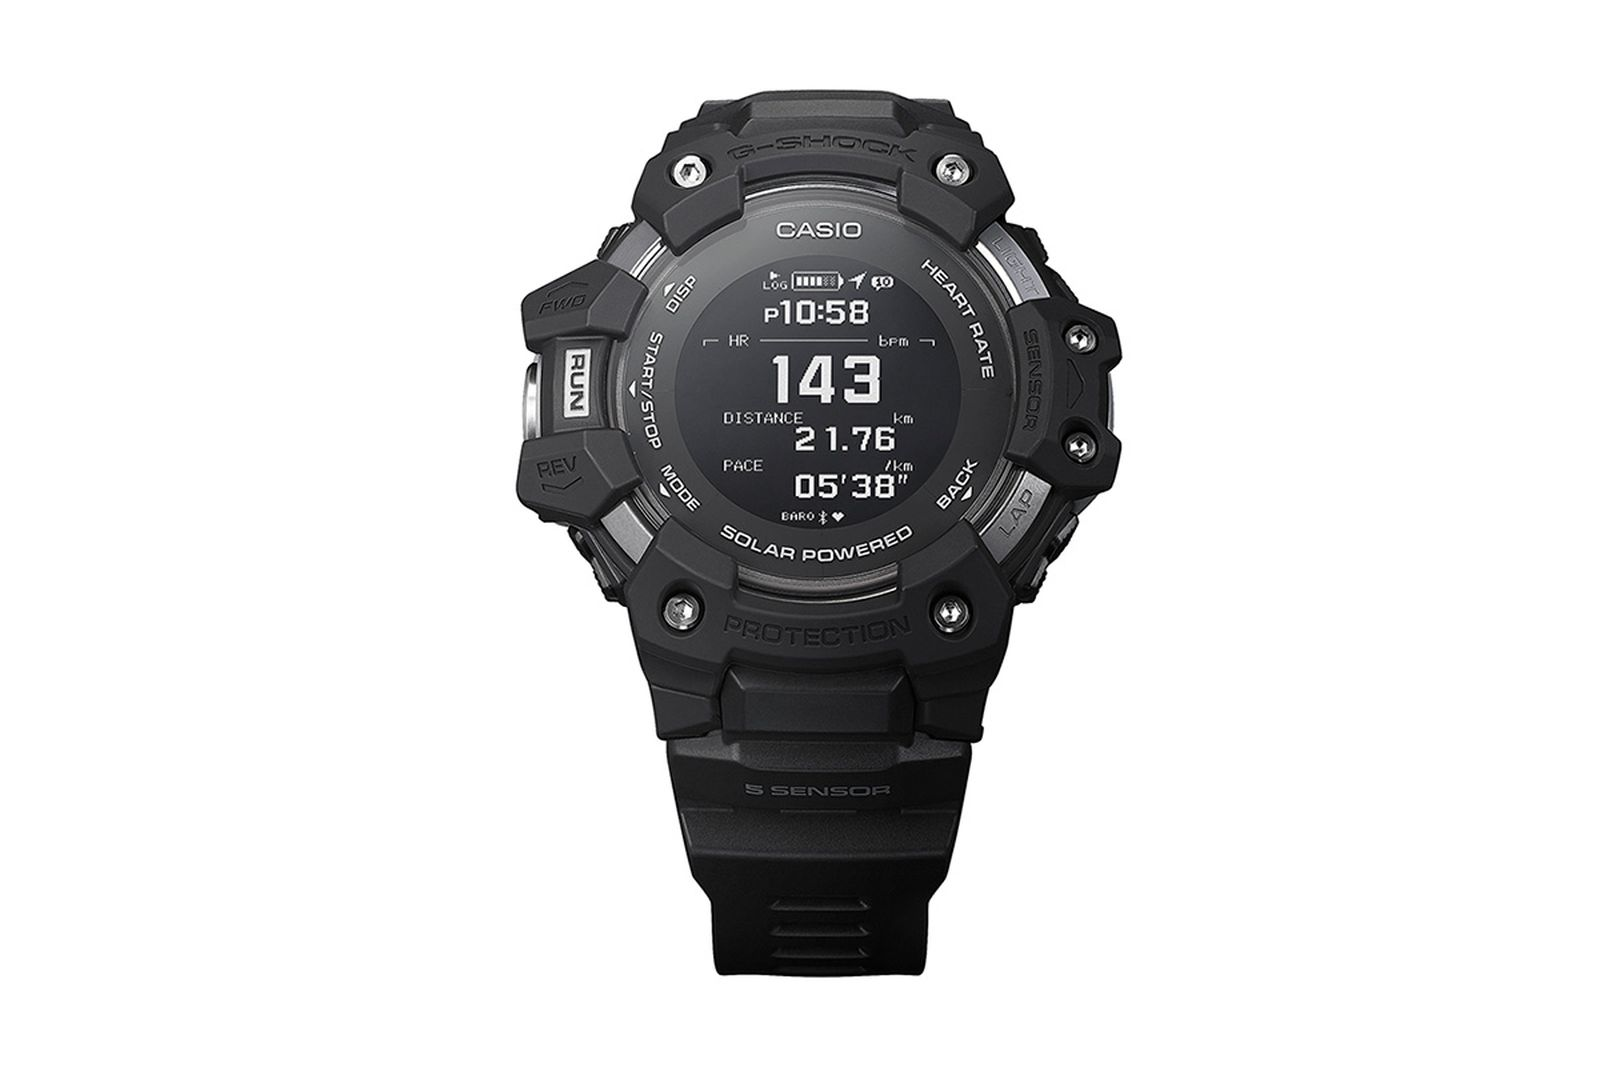 g-shock-heart-rate-monitor-gps-01